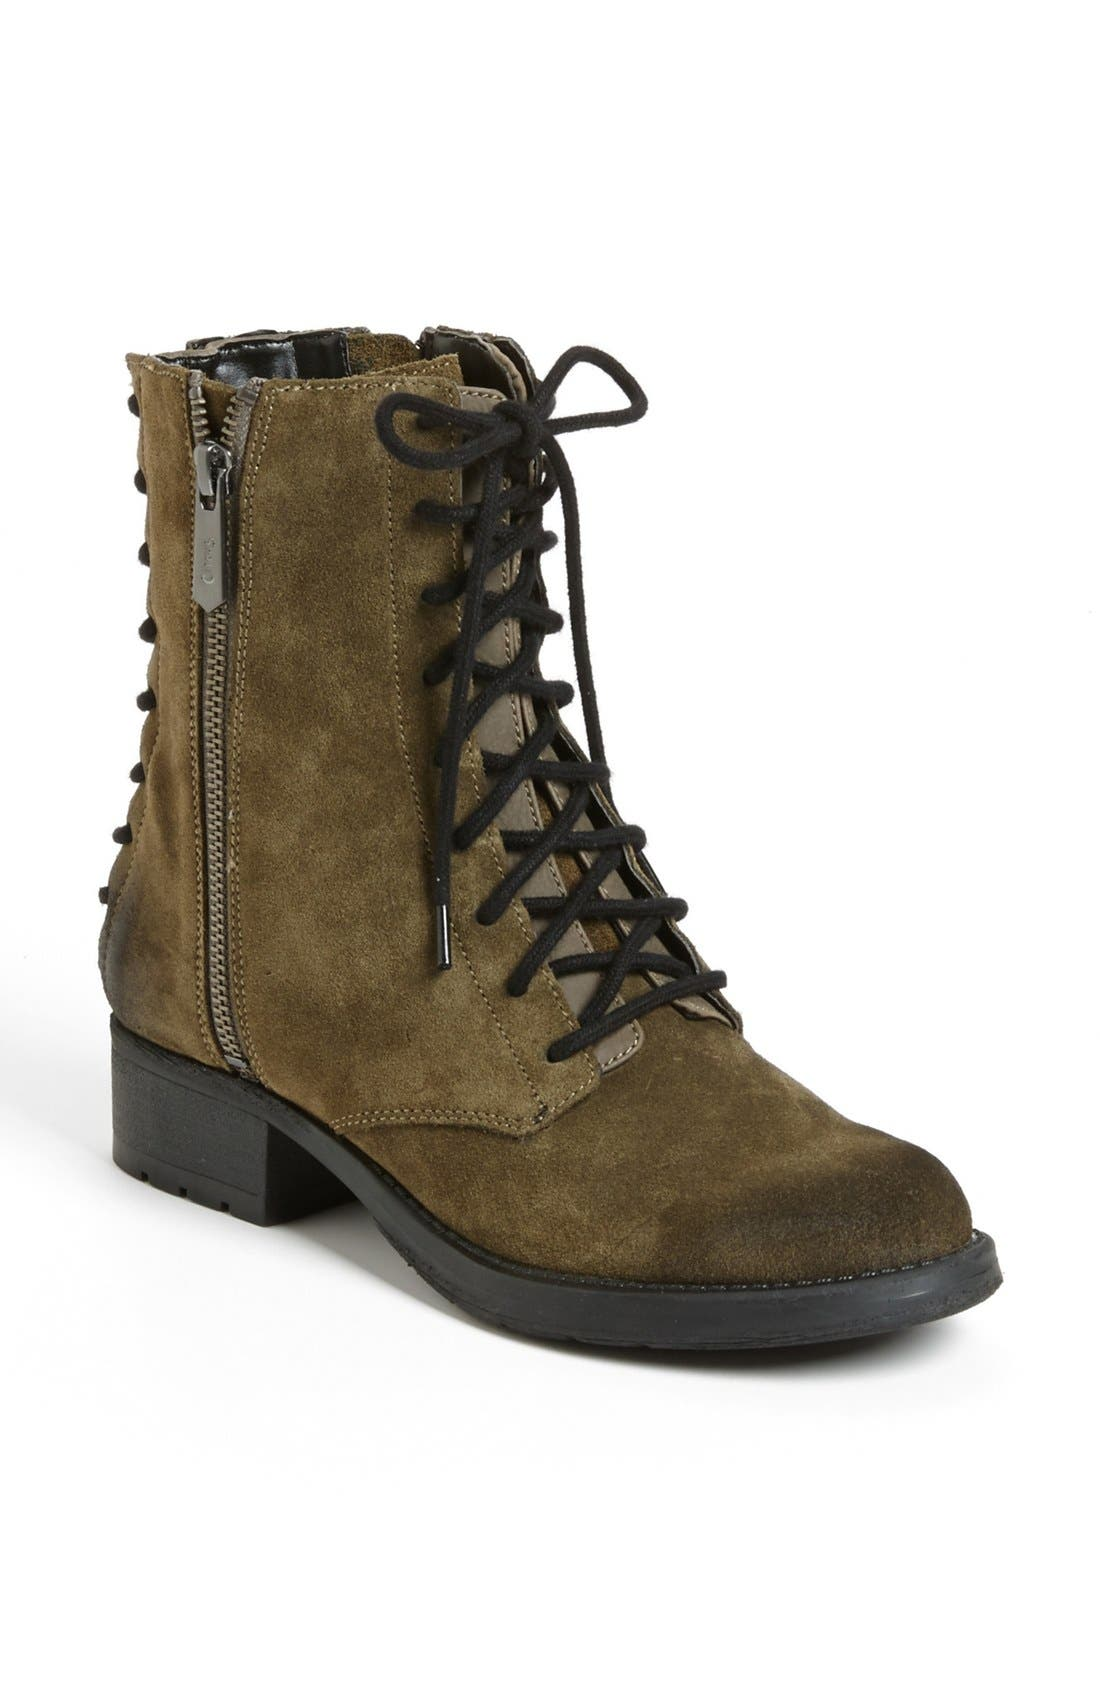 Alternate Image 1 Selected - Circus by Sam Edelman 'Griffin' Boot